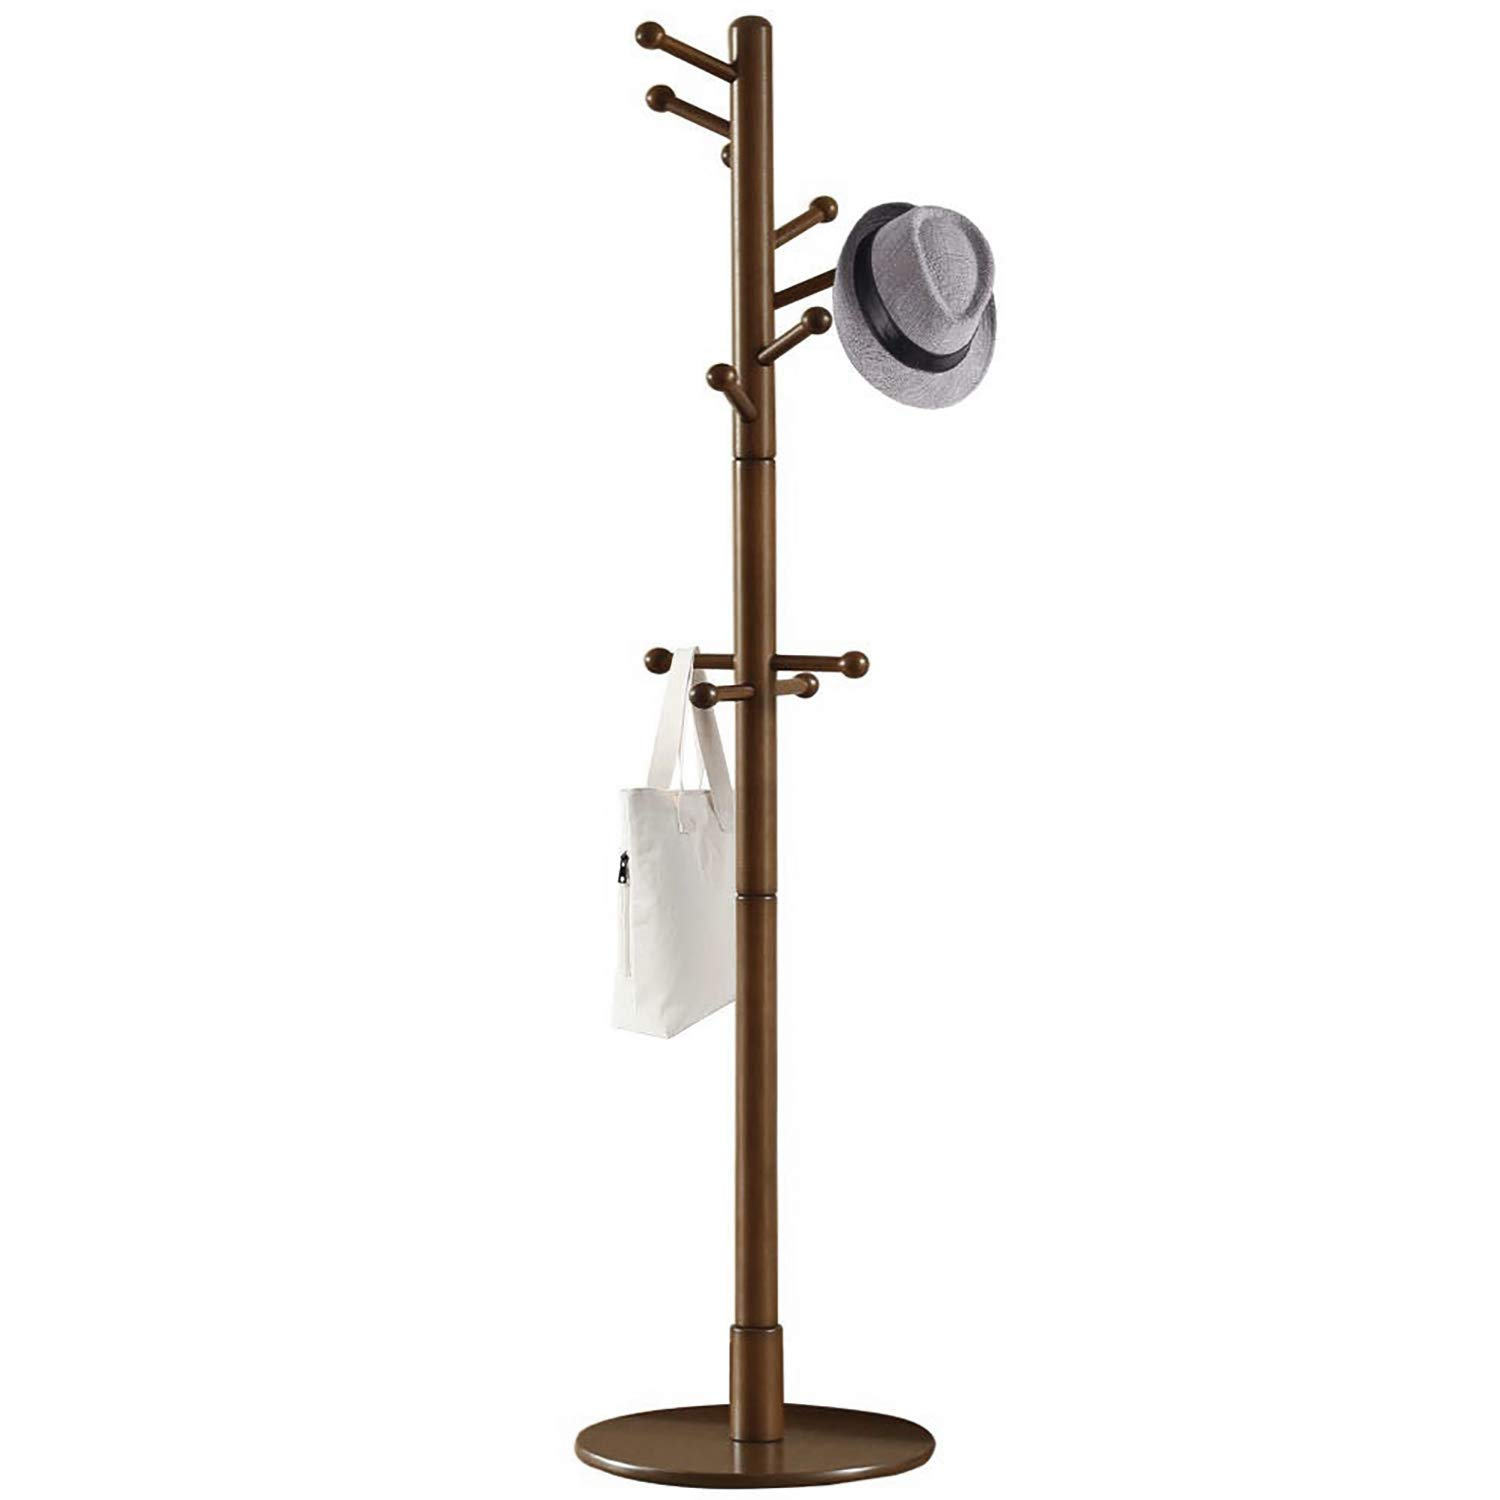 Vlush Sturdy Wooden Coat Rack Stand, Entryway Hall Tree Coat Tree with Solid Round Base for Hat,Clothes,Purse,Scarves,Handbags,Umbrella-(Dark Brown, 11 Hooks) by Vlush